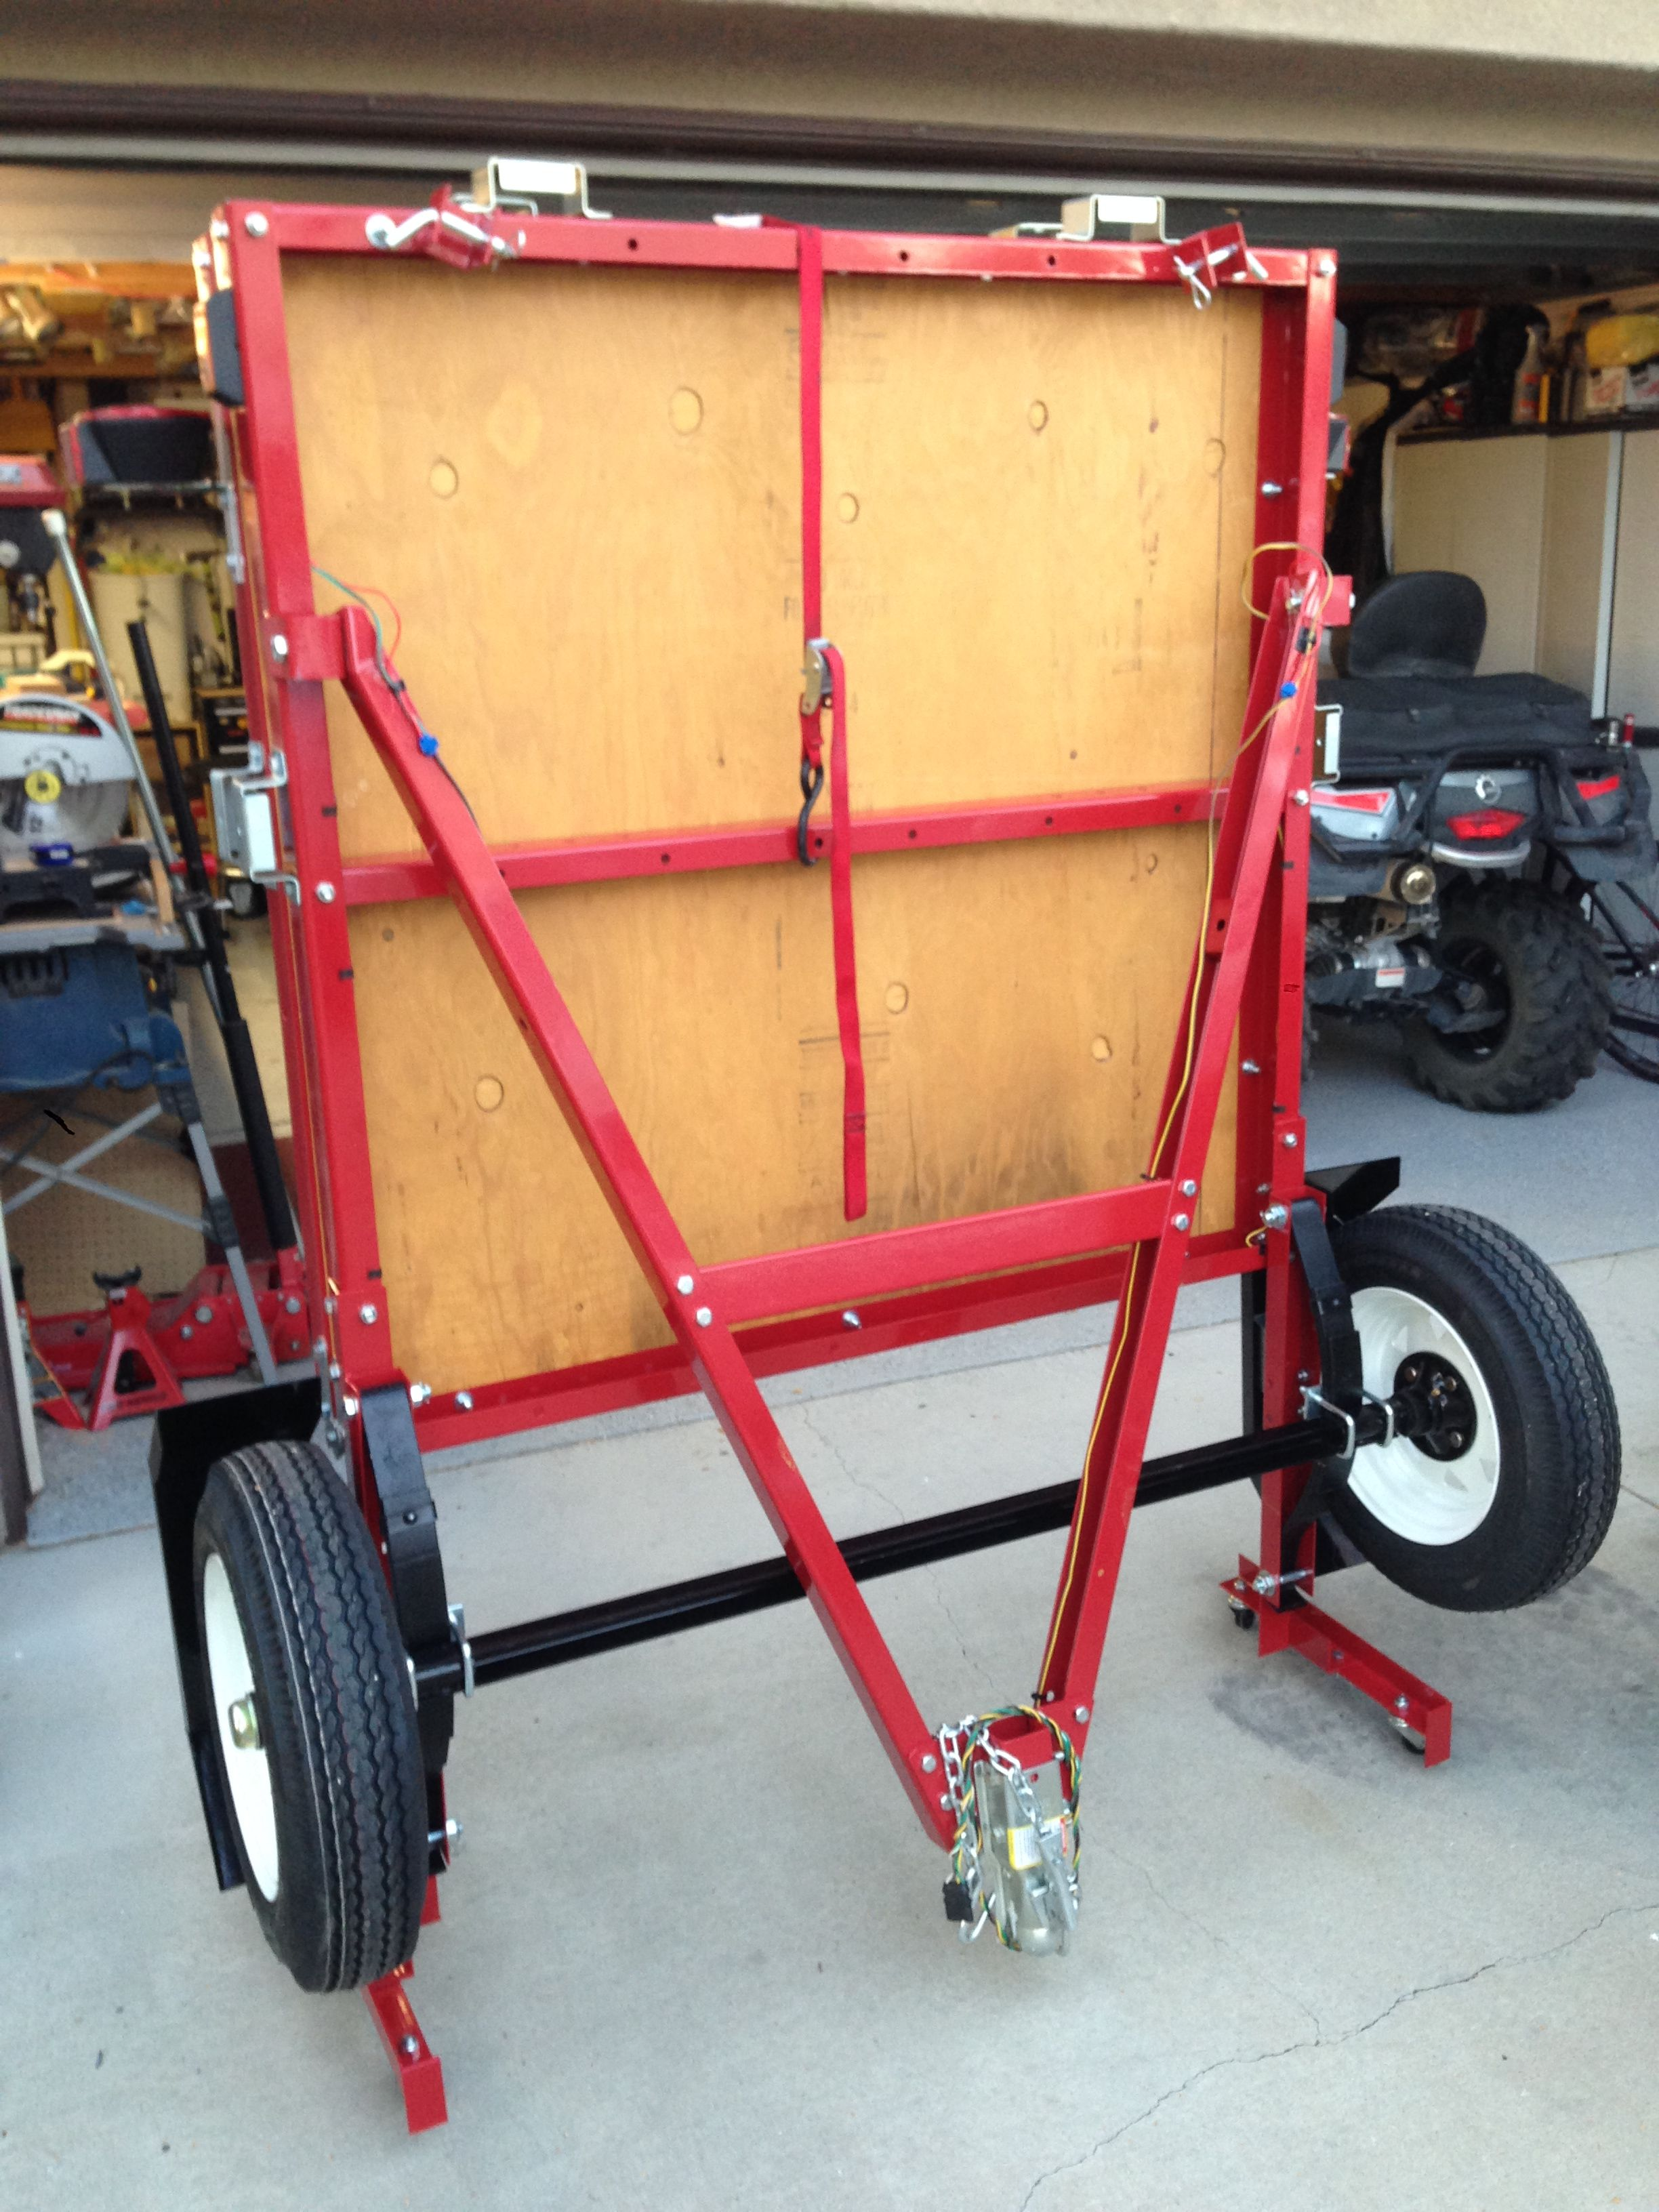 Folding trailer in folded position, ready for storage